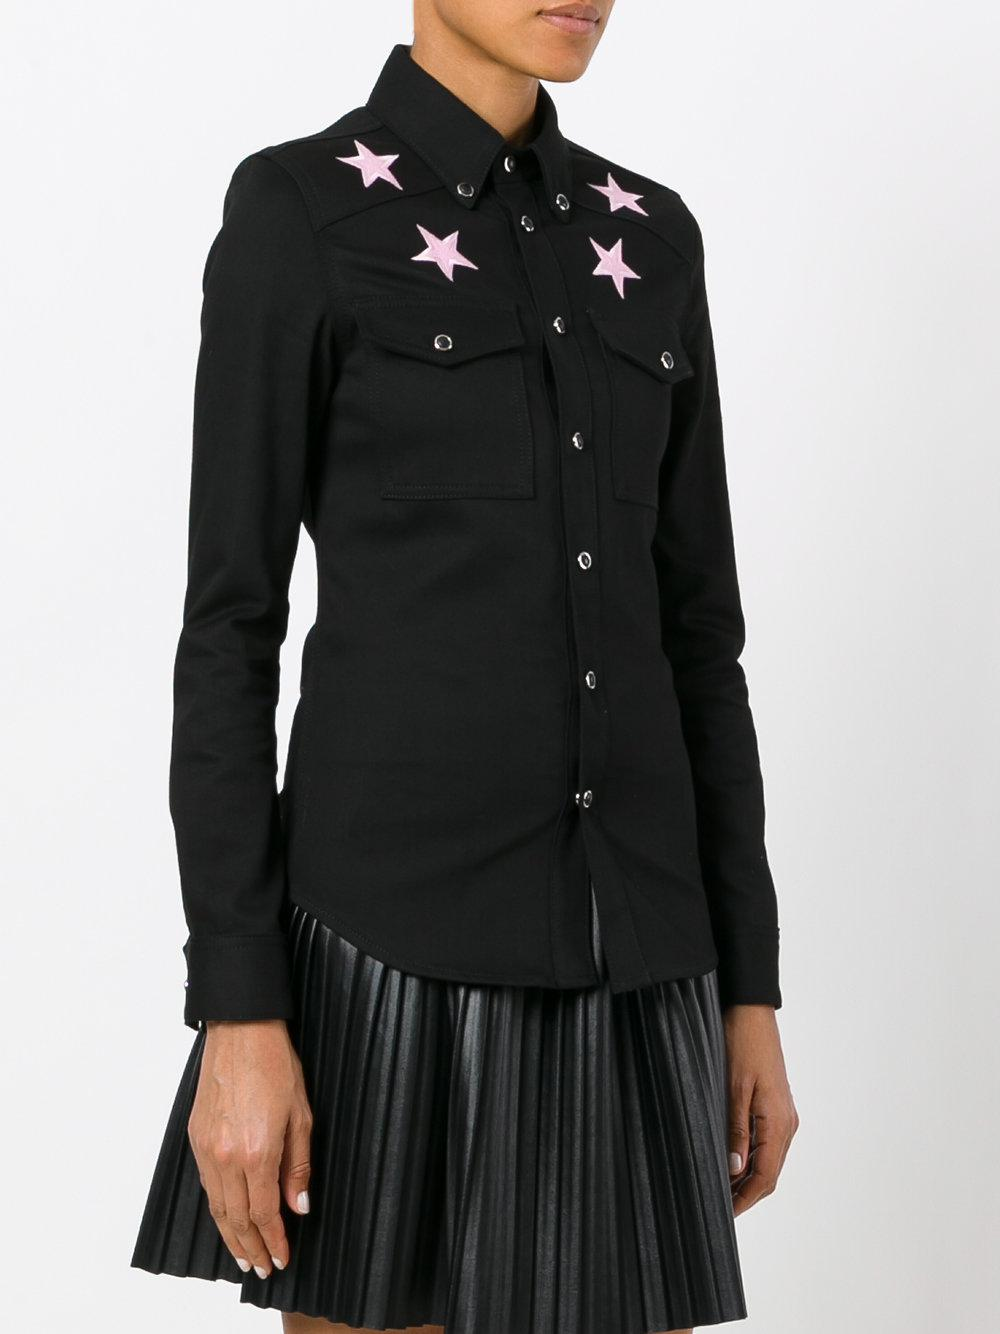 Lyst givenchy star embroidered shirt in black for Givenchy 5 star shirt